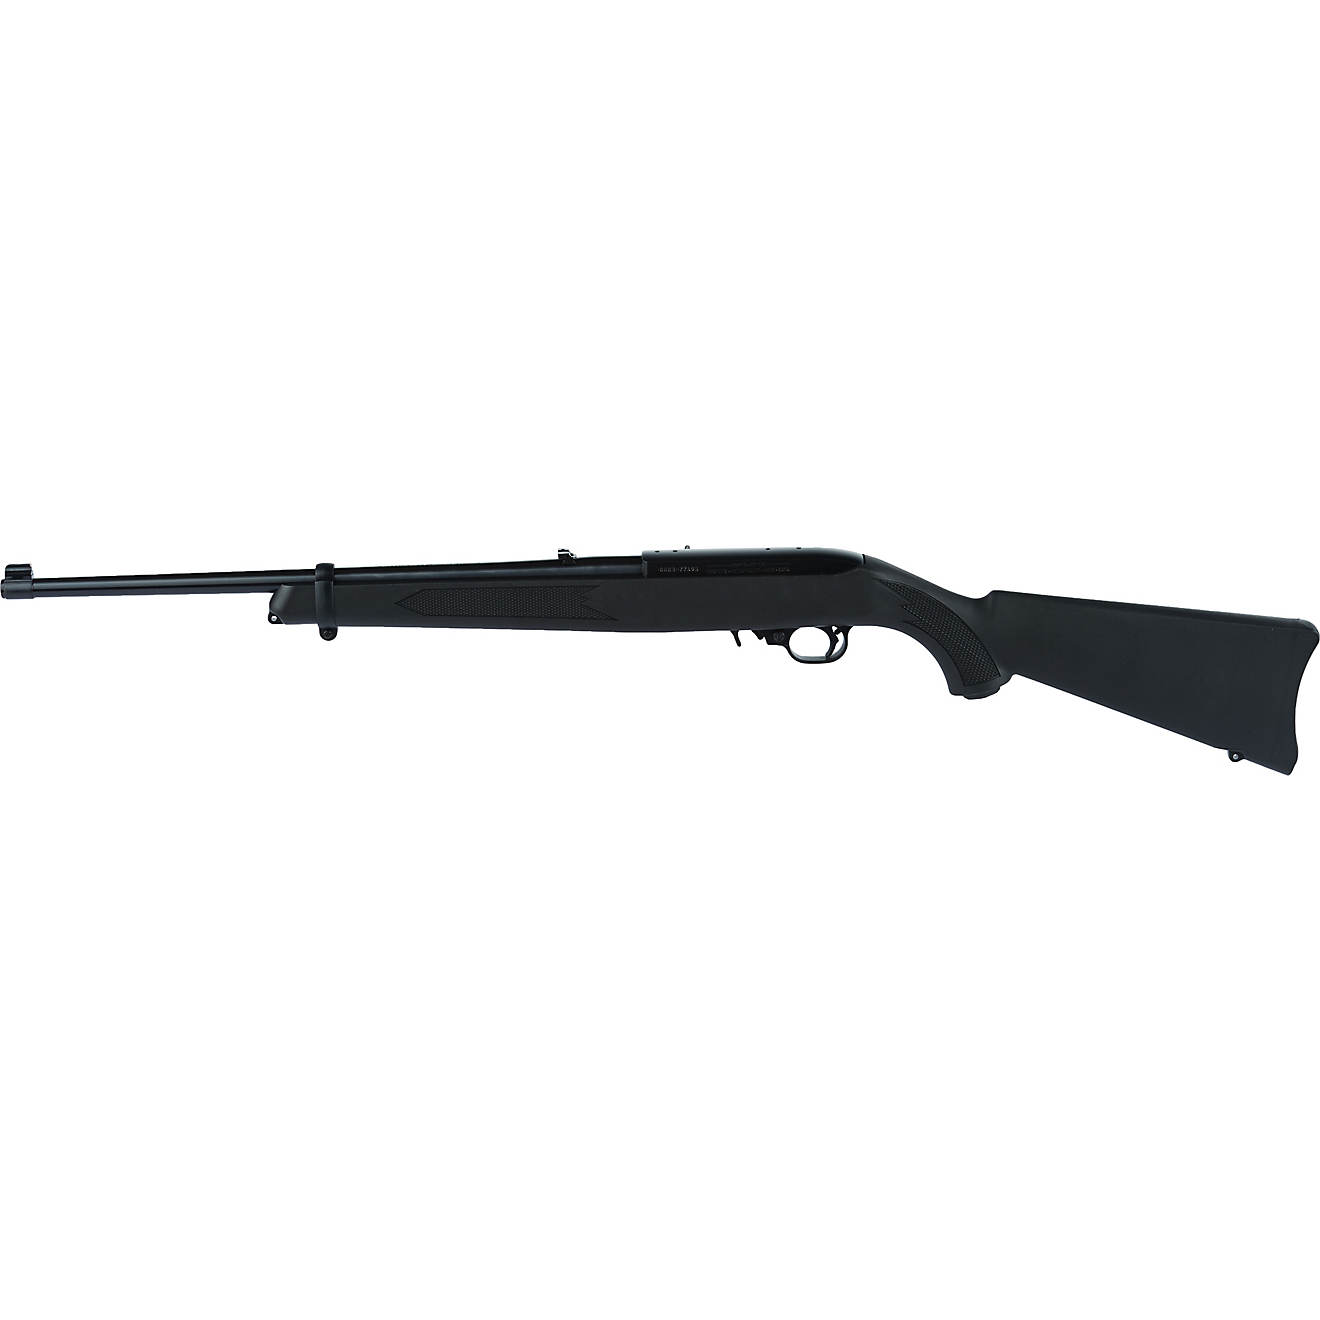 Ruger 1022 SYN .22 LR Semiautomatic Rifle